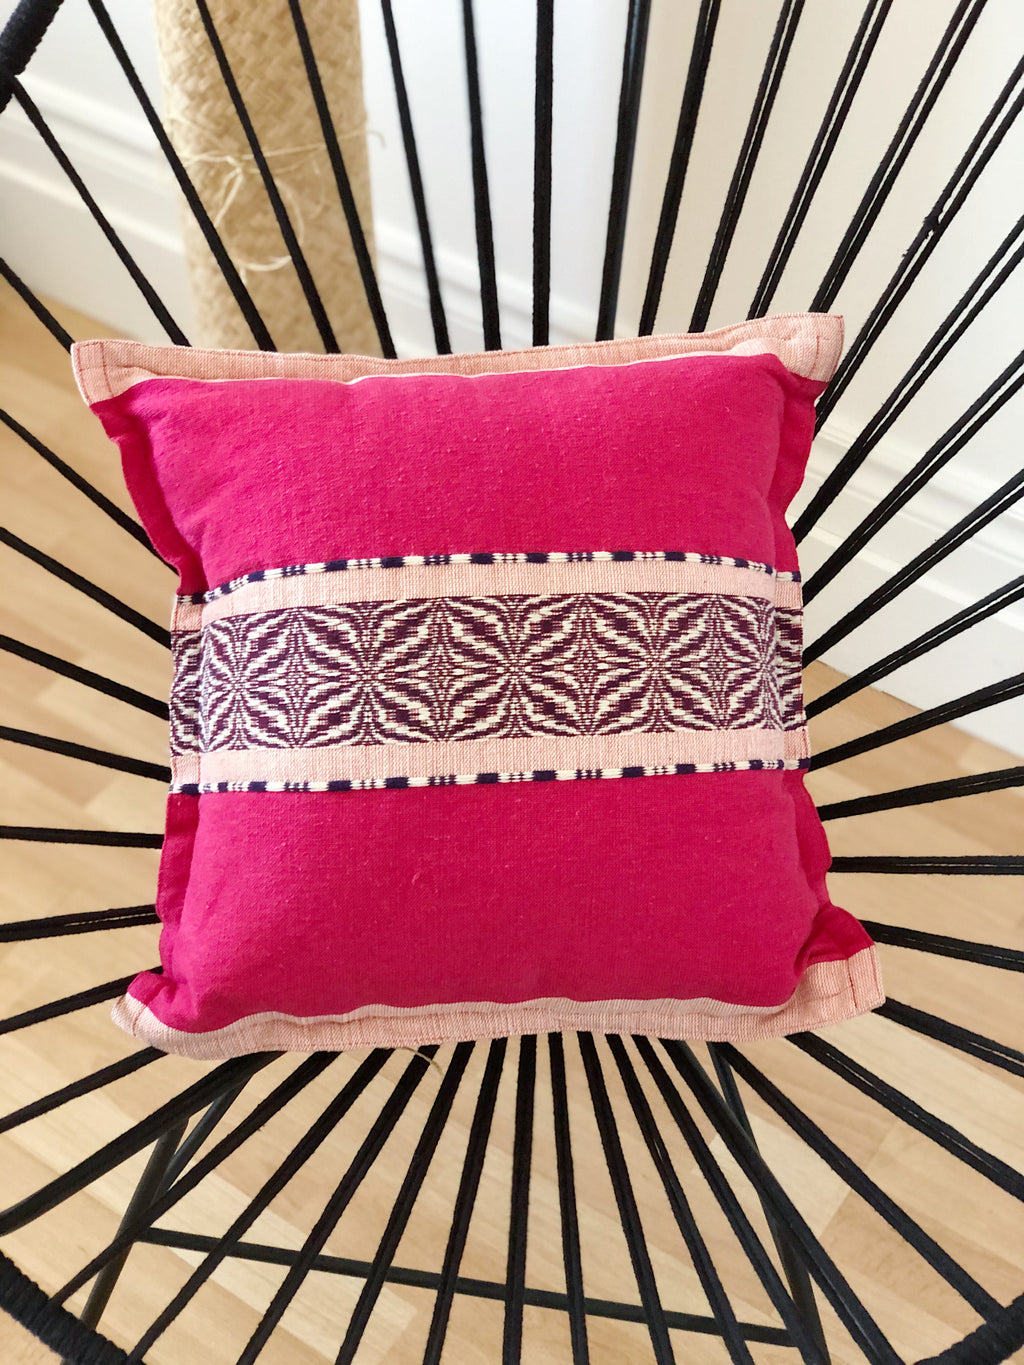 The cushion cover the pink